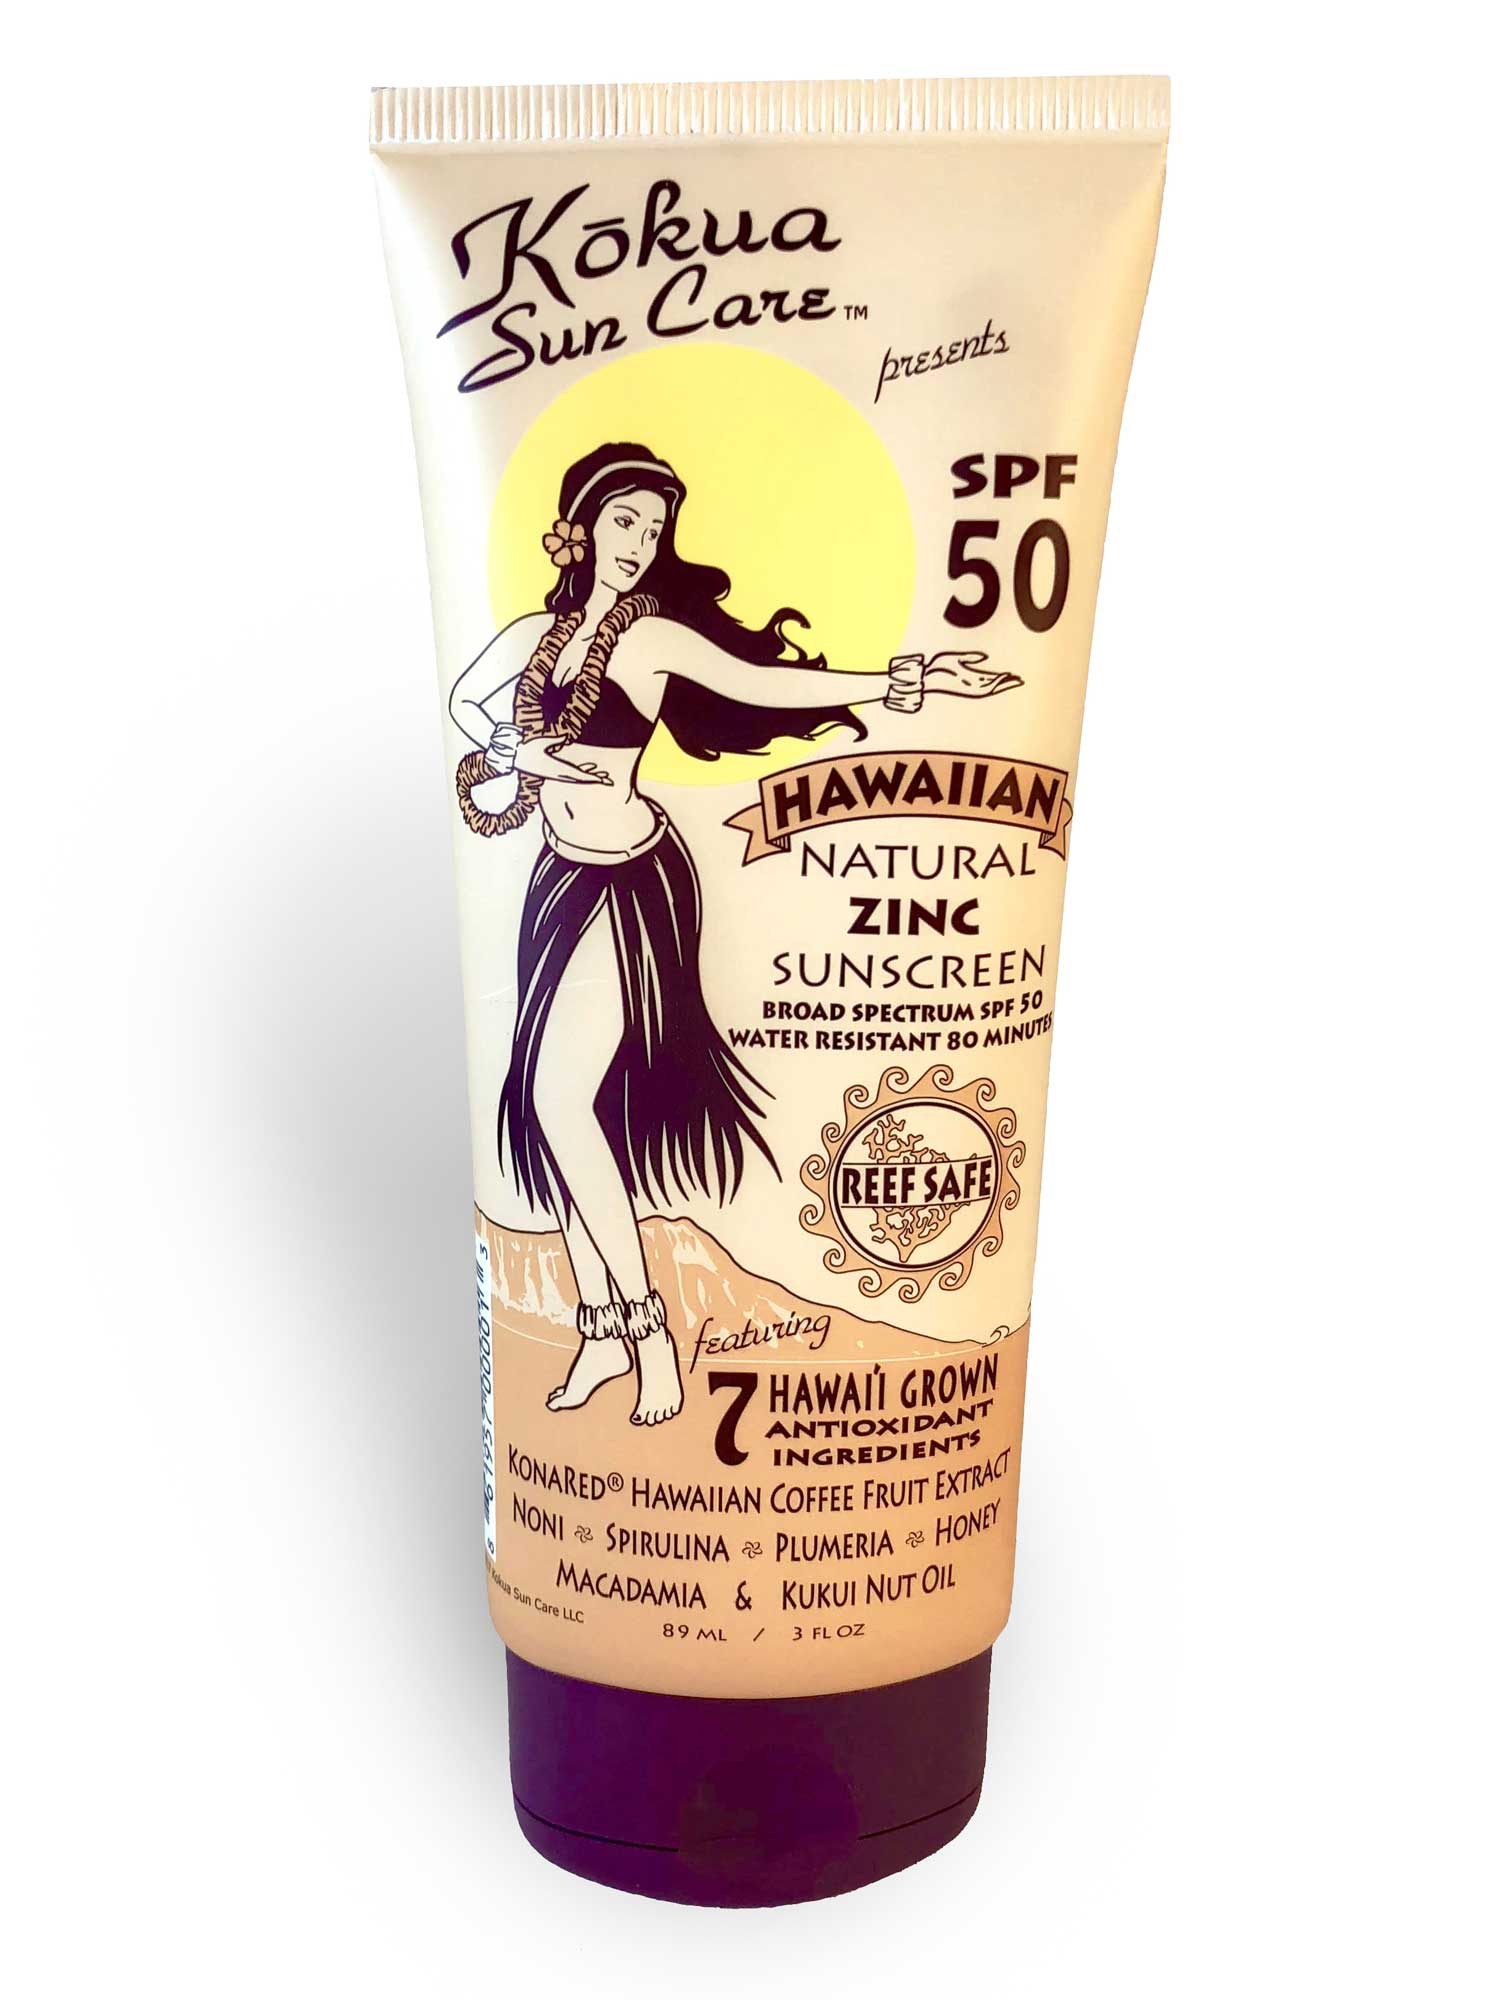 HAWAIIAN NATURAL ZINC SUNSCREEN SPF 50 3 PACK